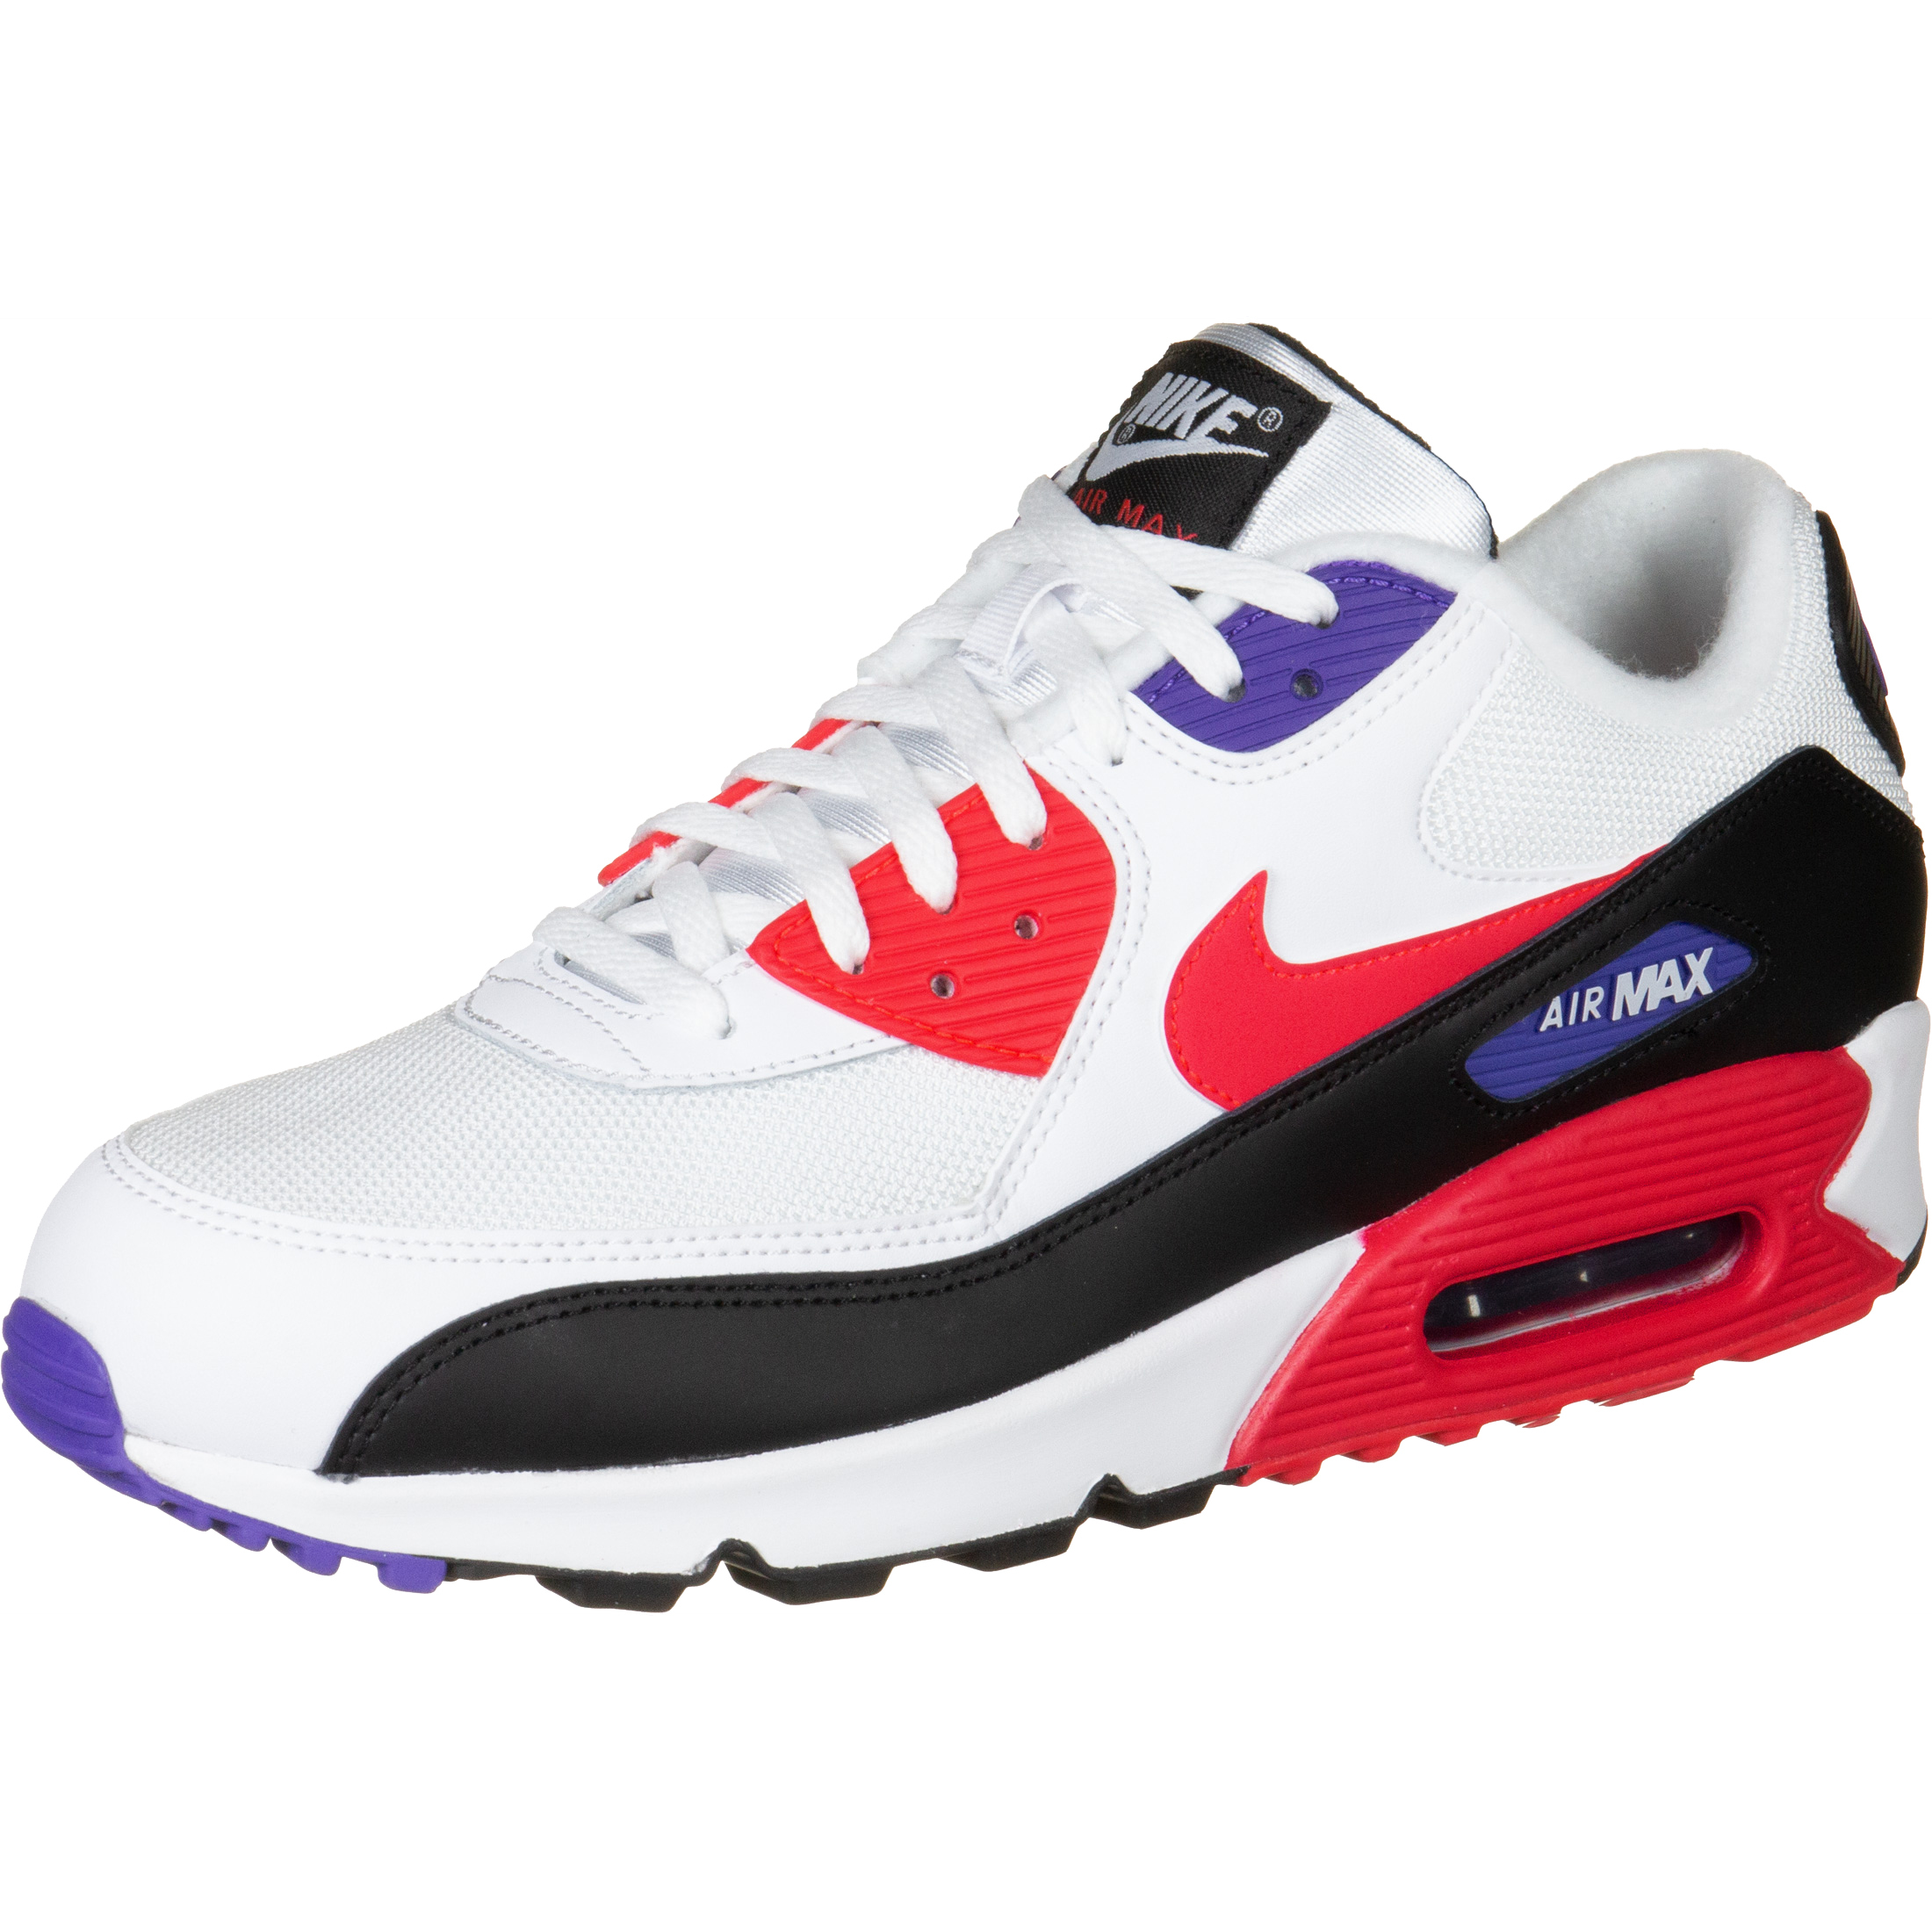 new style 43e43 e2daa Nike Air Max 90 Essential White/ Red Orbit-Psychic Purple-Black